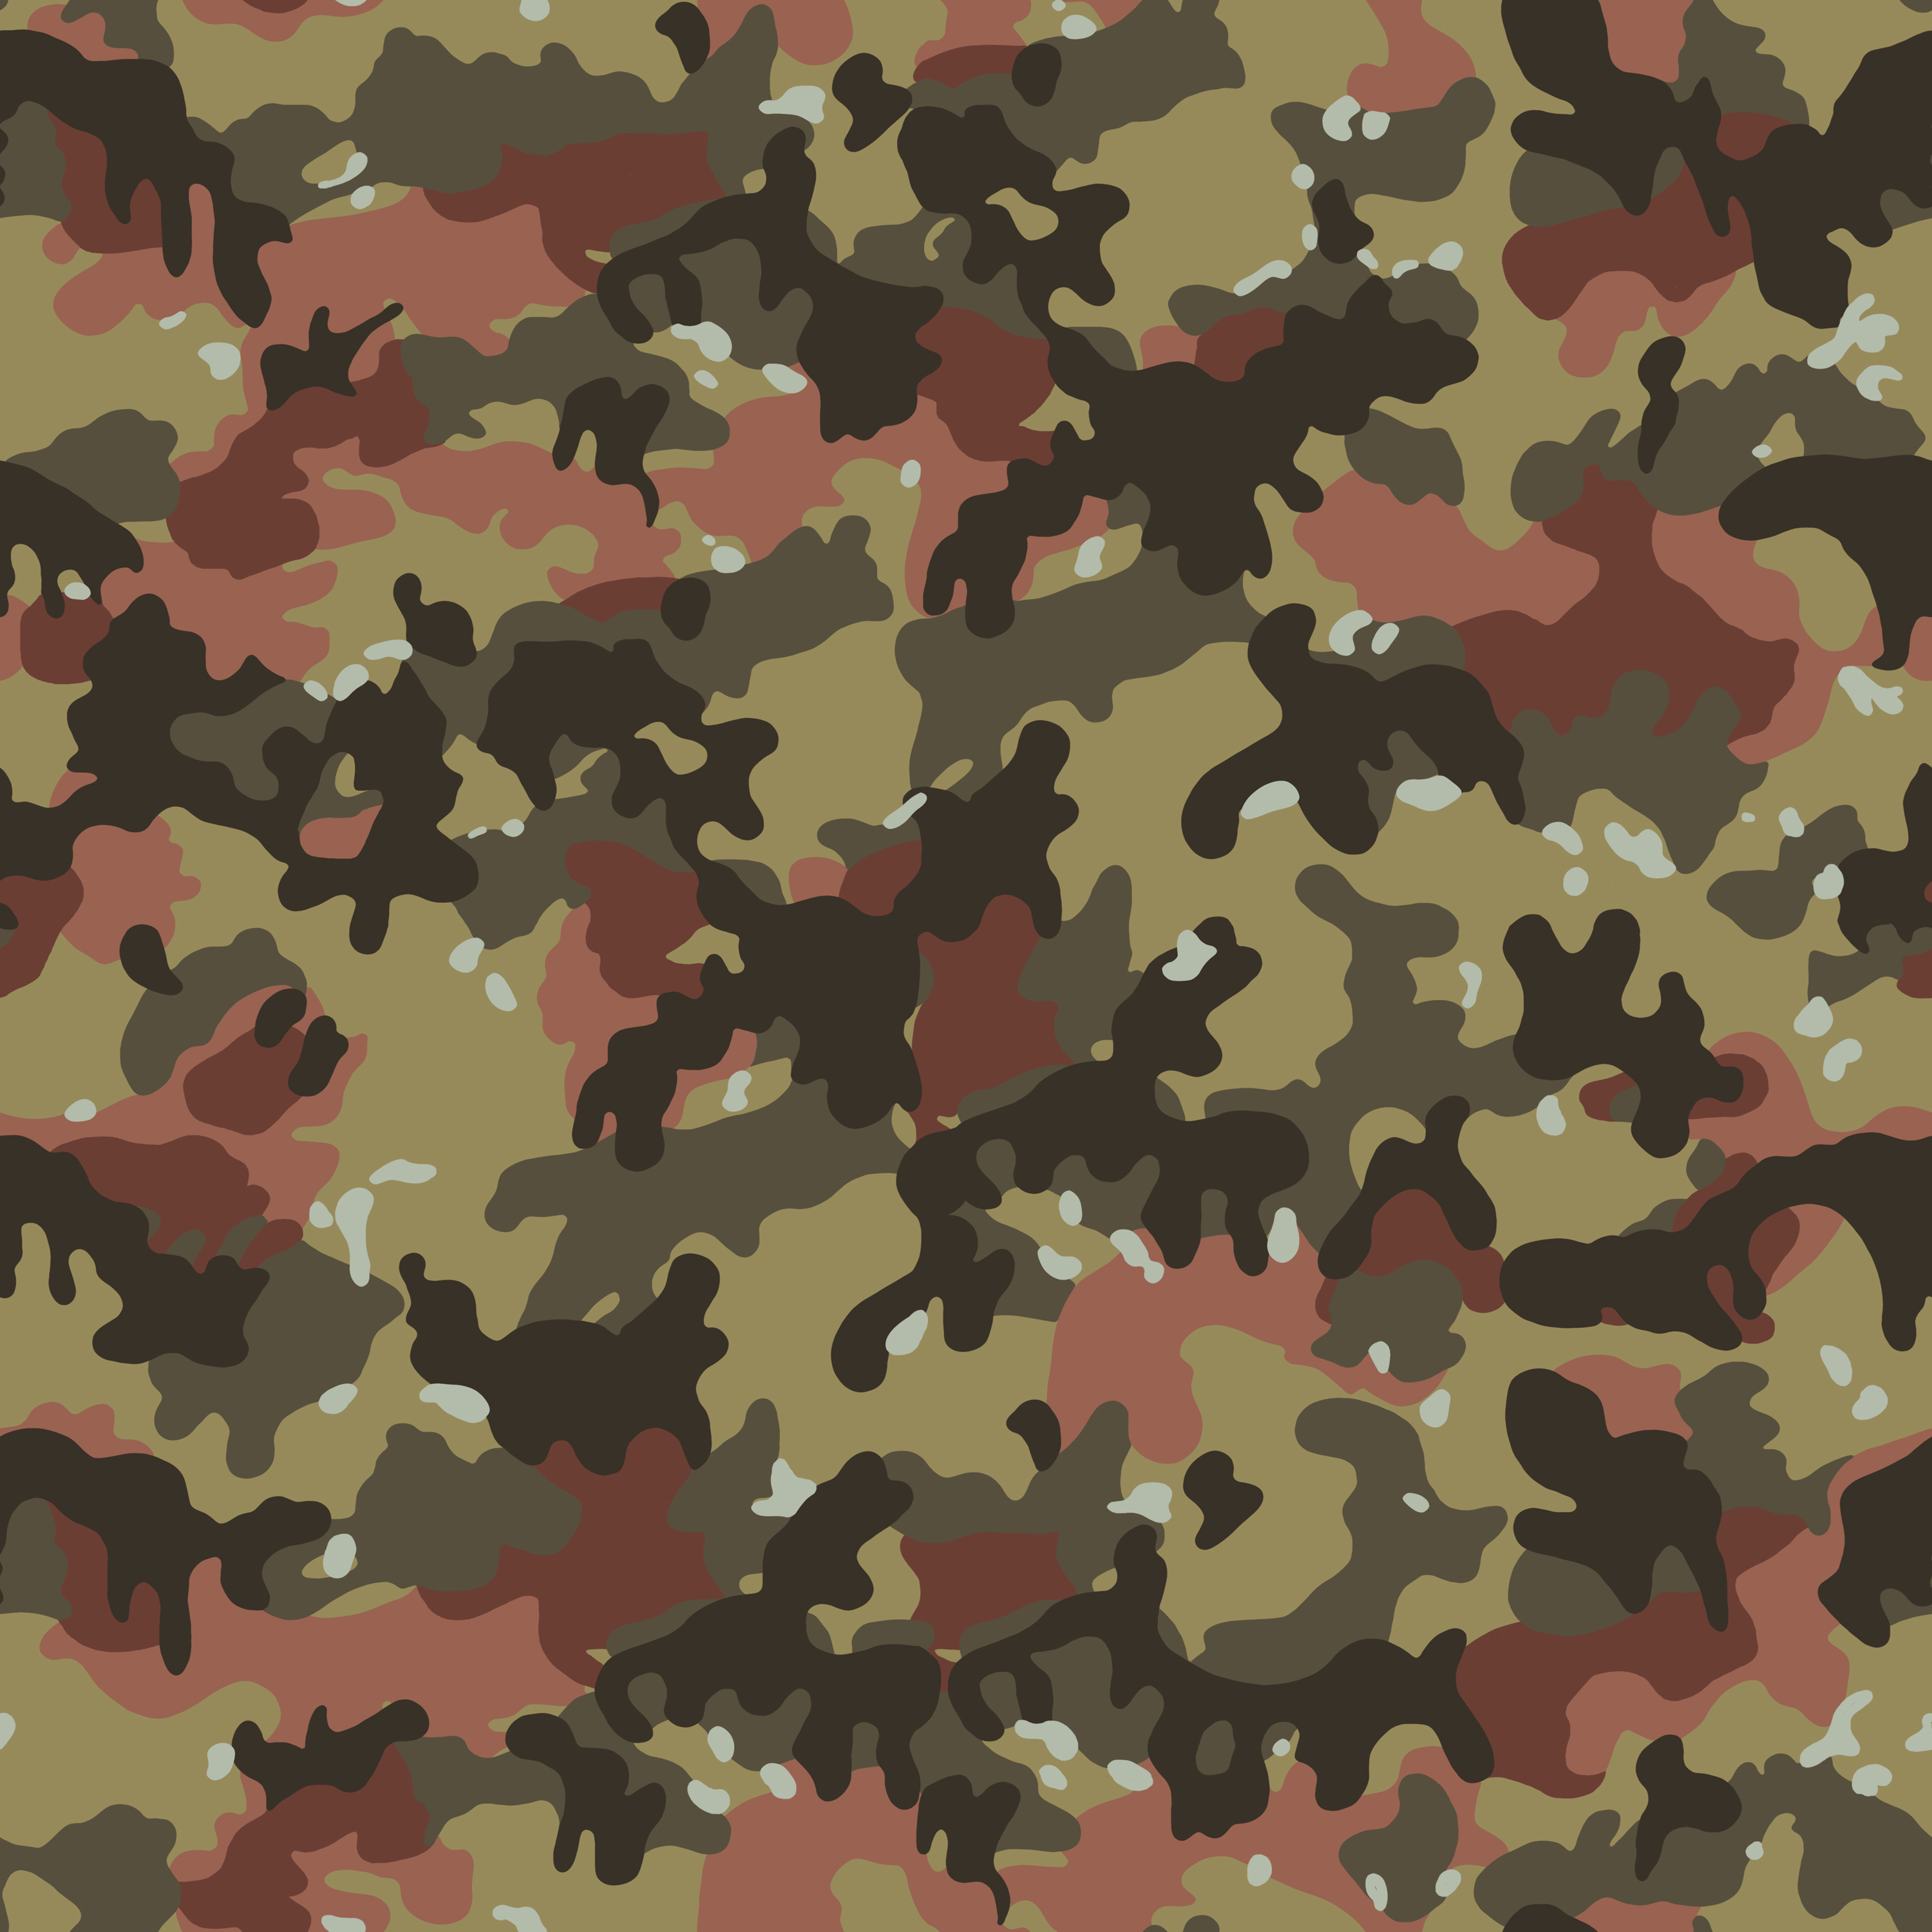 camouflage, texture, woodland texture camouflage